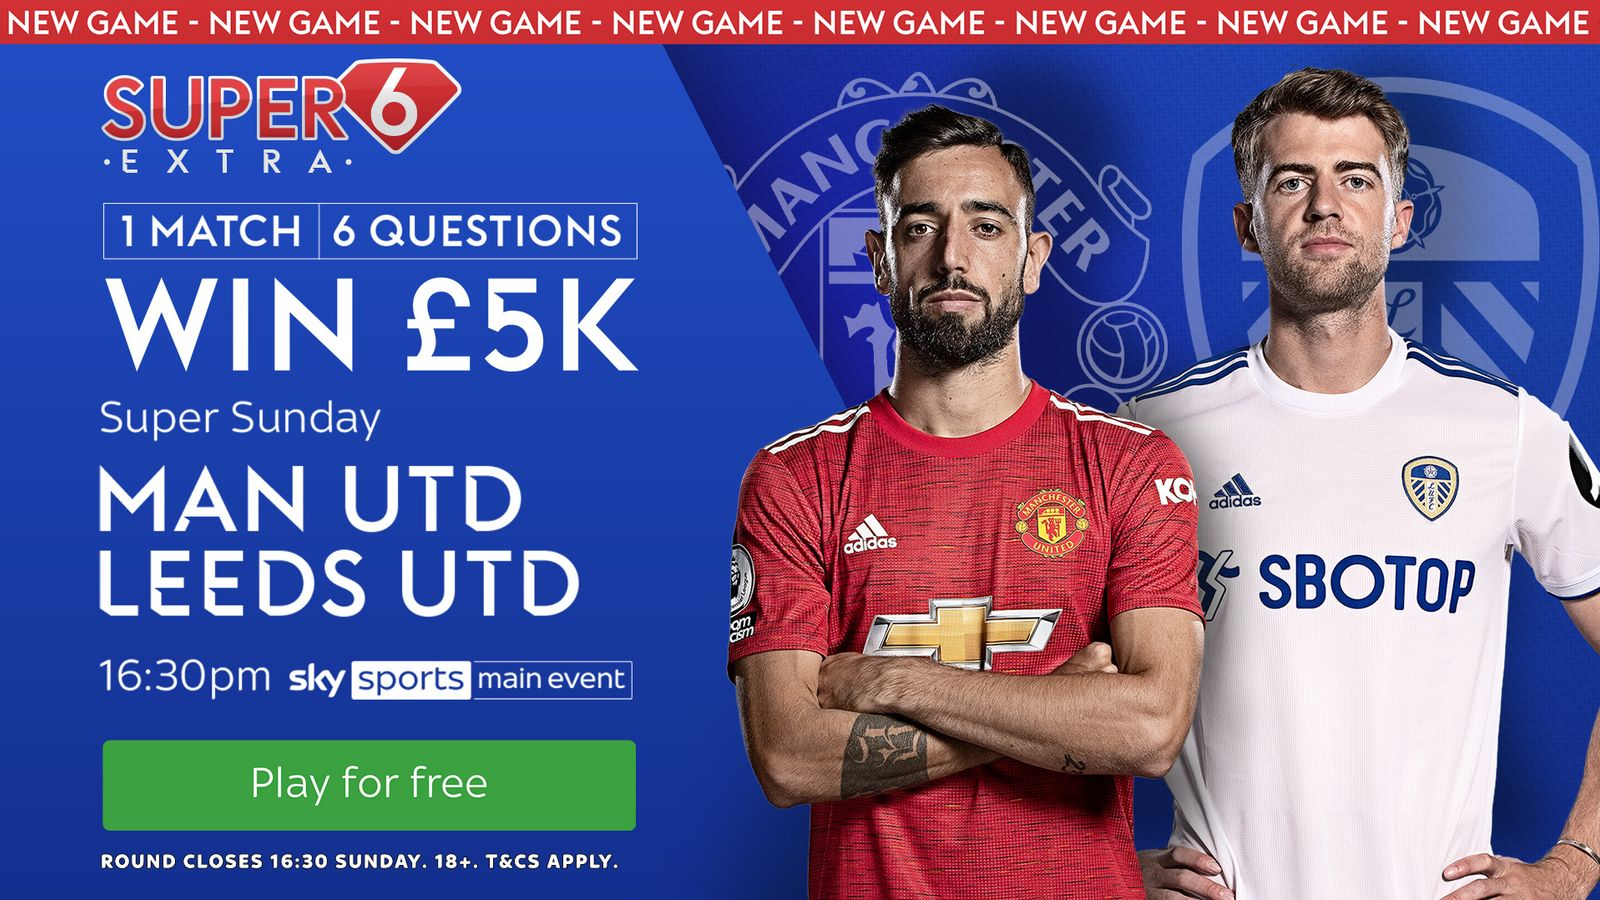 super-6-extra-win-5000-by-predicting-the-events-of-man-utd-vs-leeds-utd